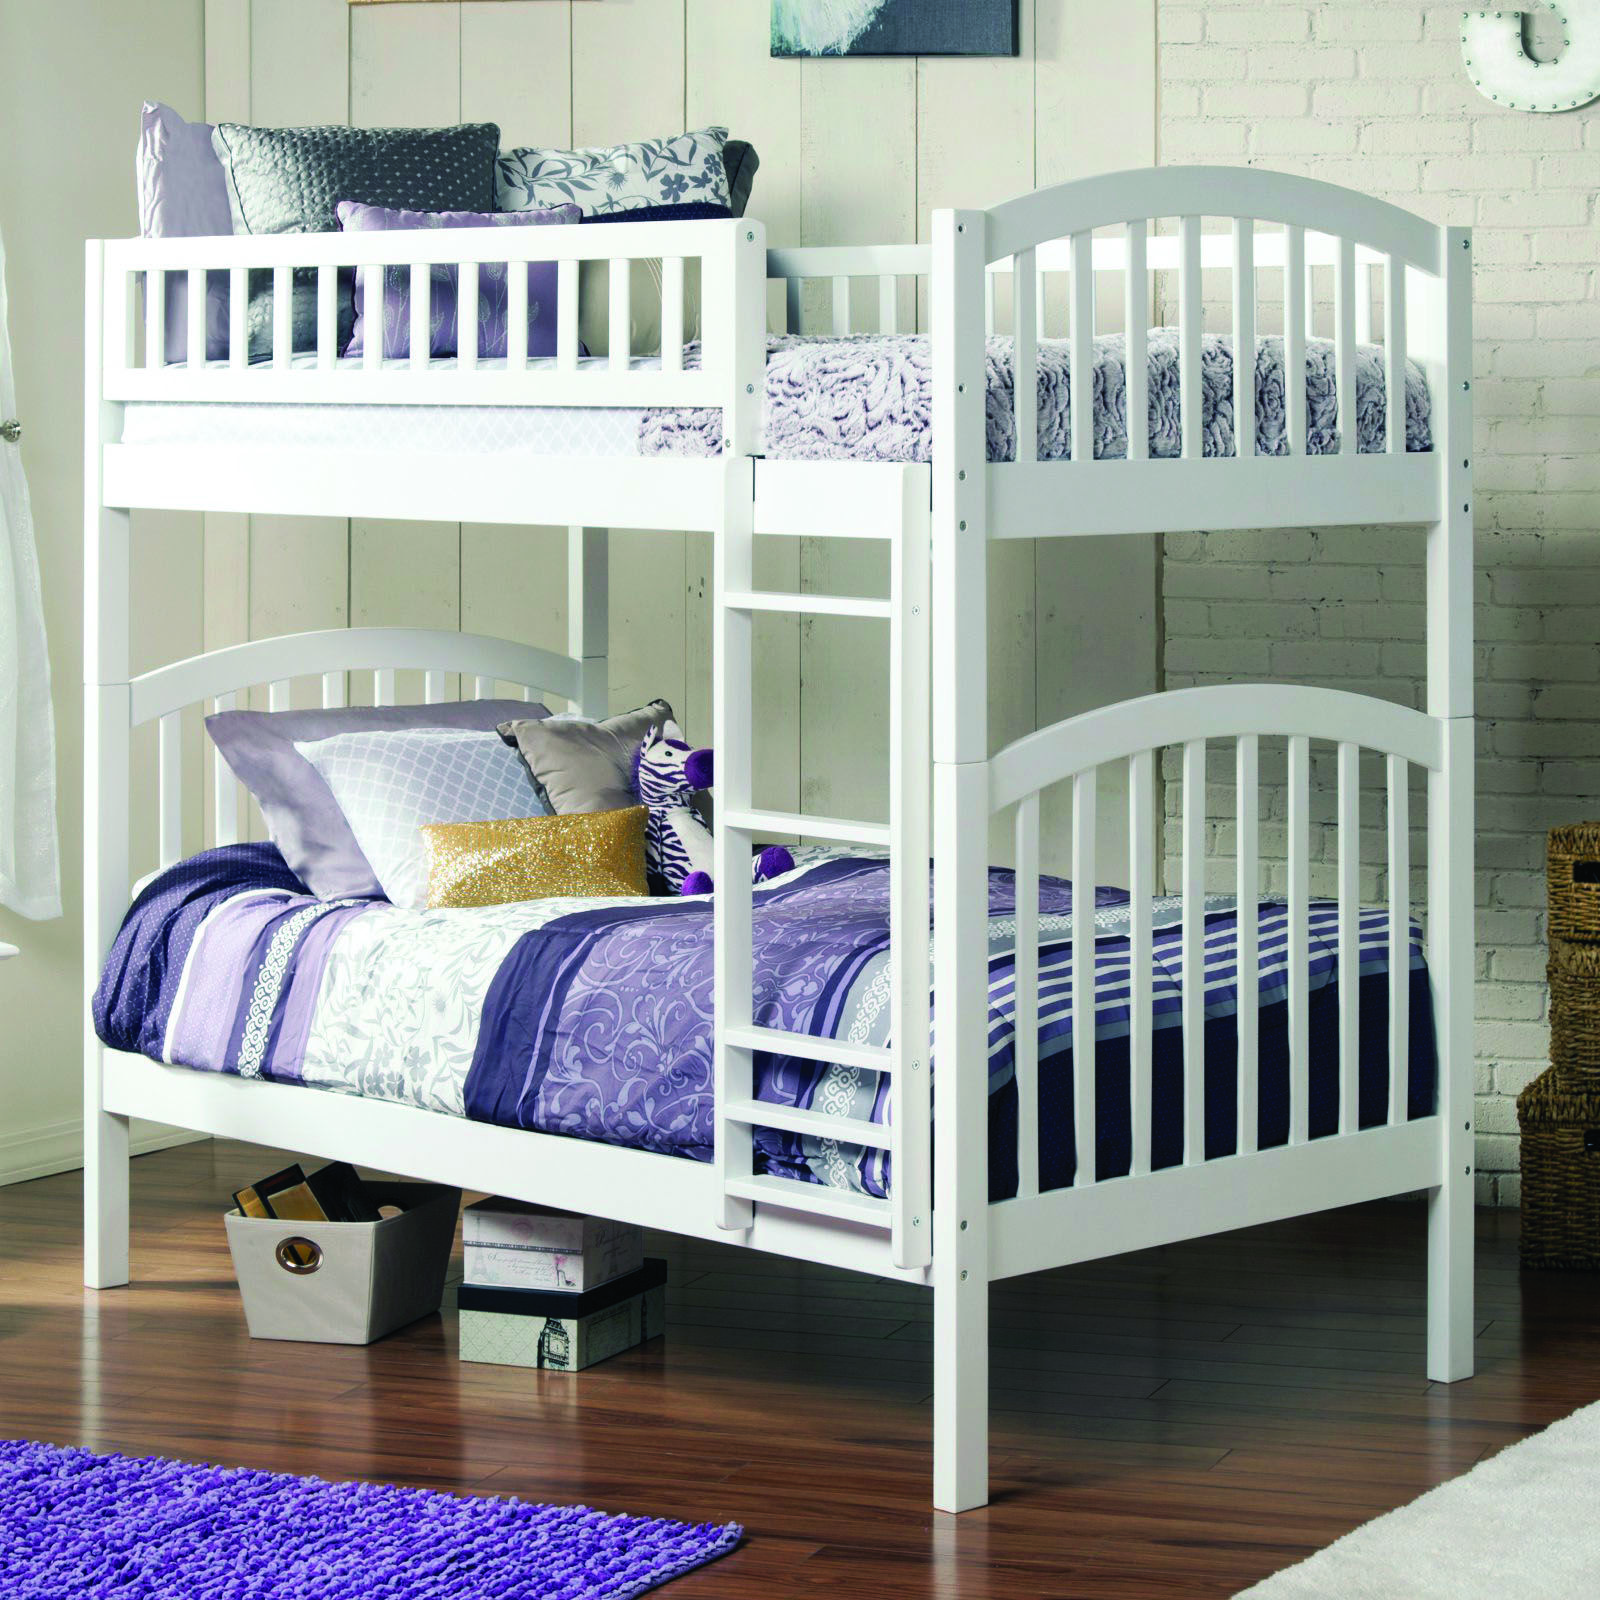 8 Loft Bedroom Ideas For Your Tiny Bed Room With Images Twin Bunk Beds Ikea Bunk Bed Bunk Beds